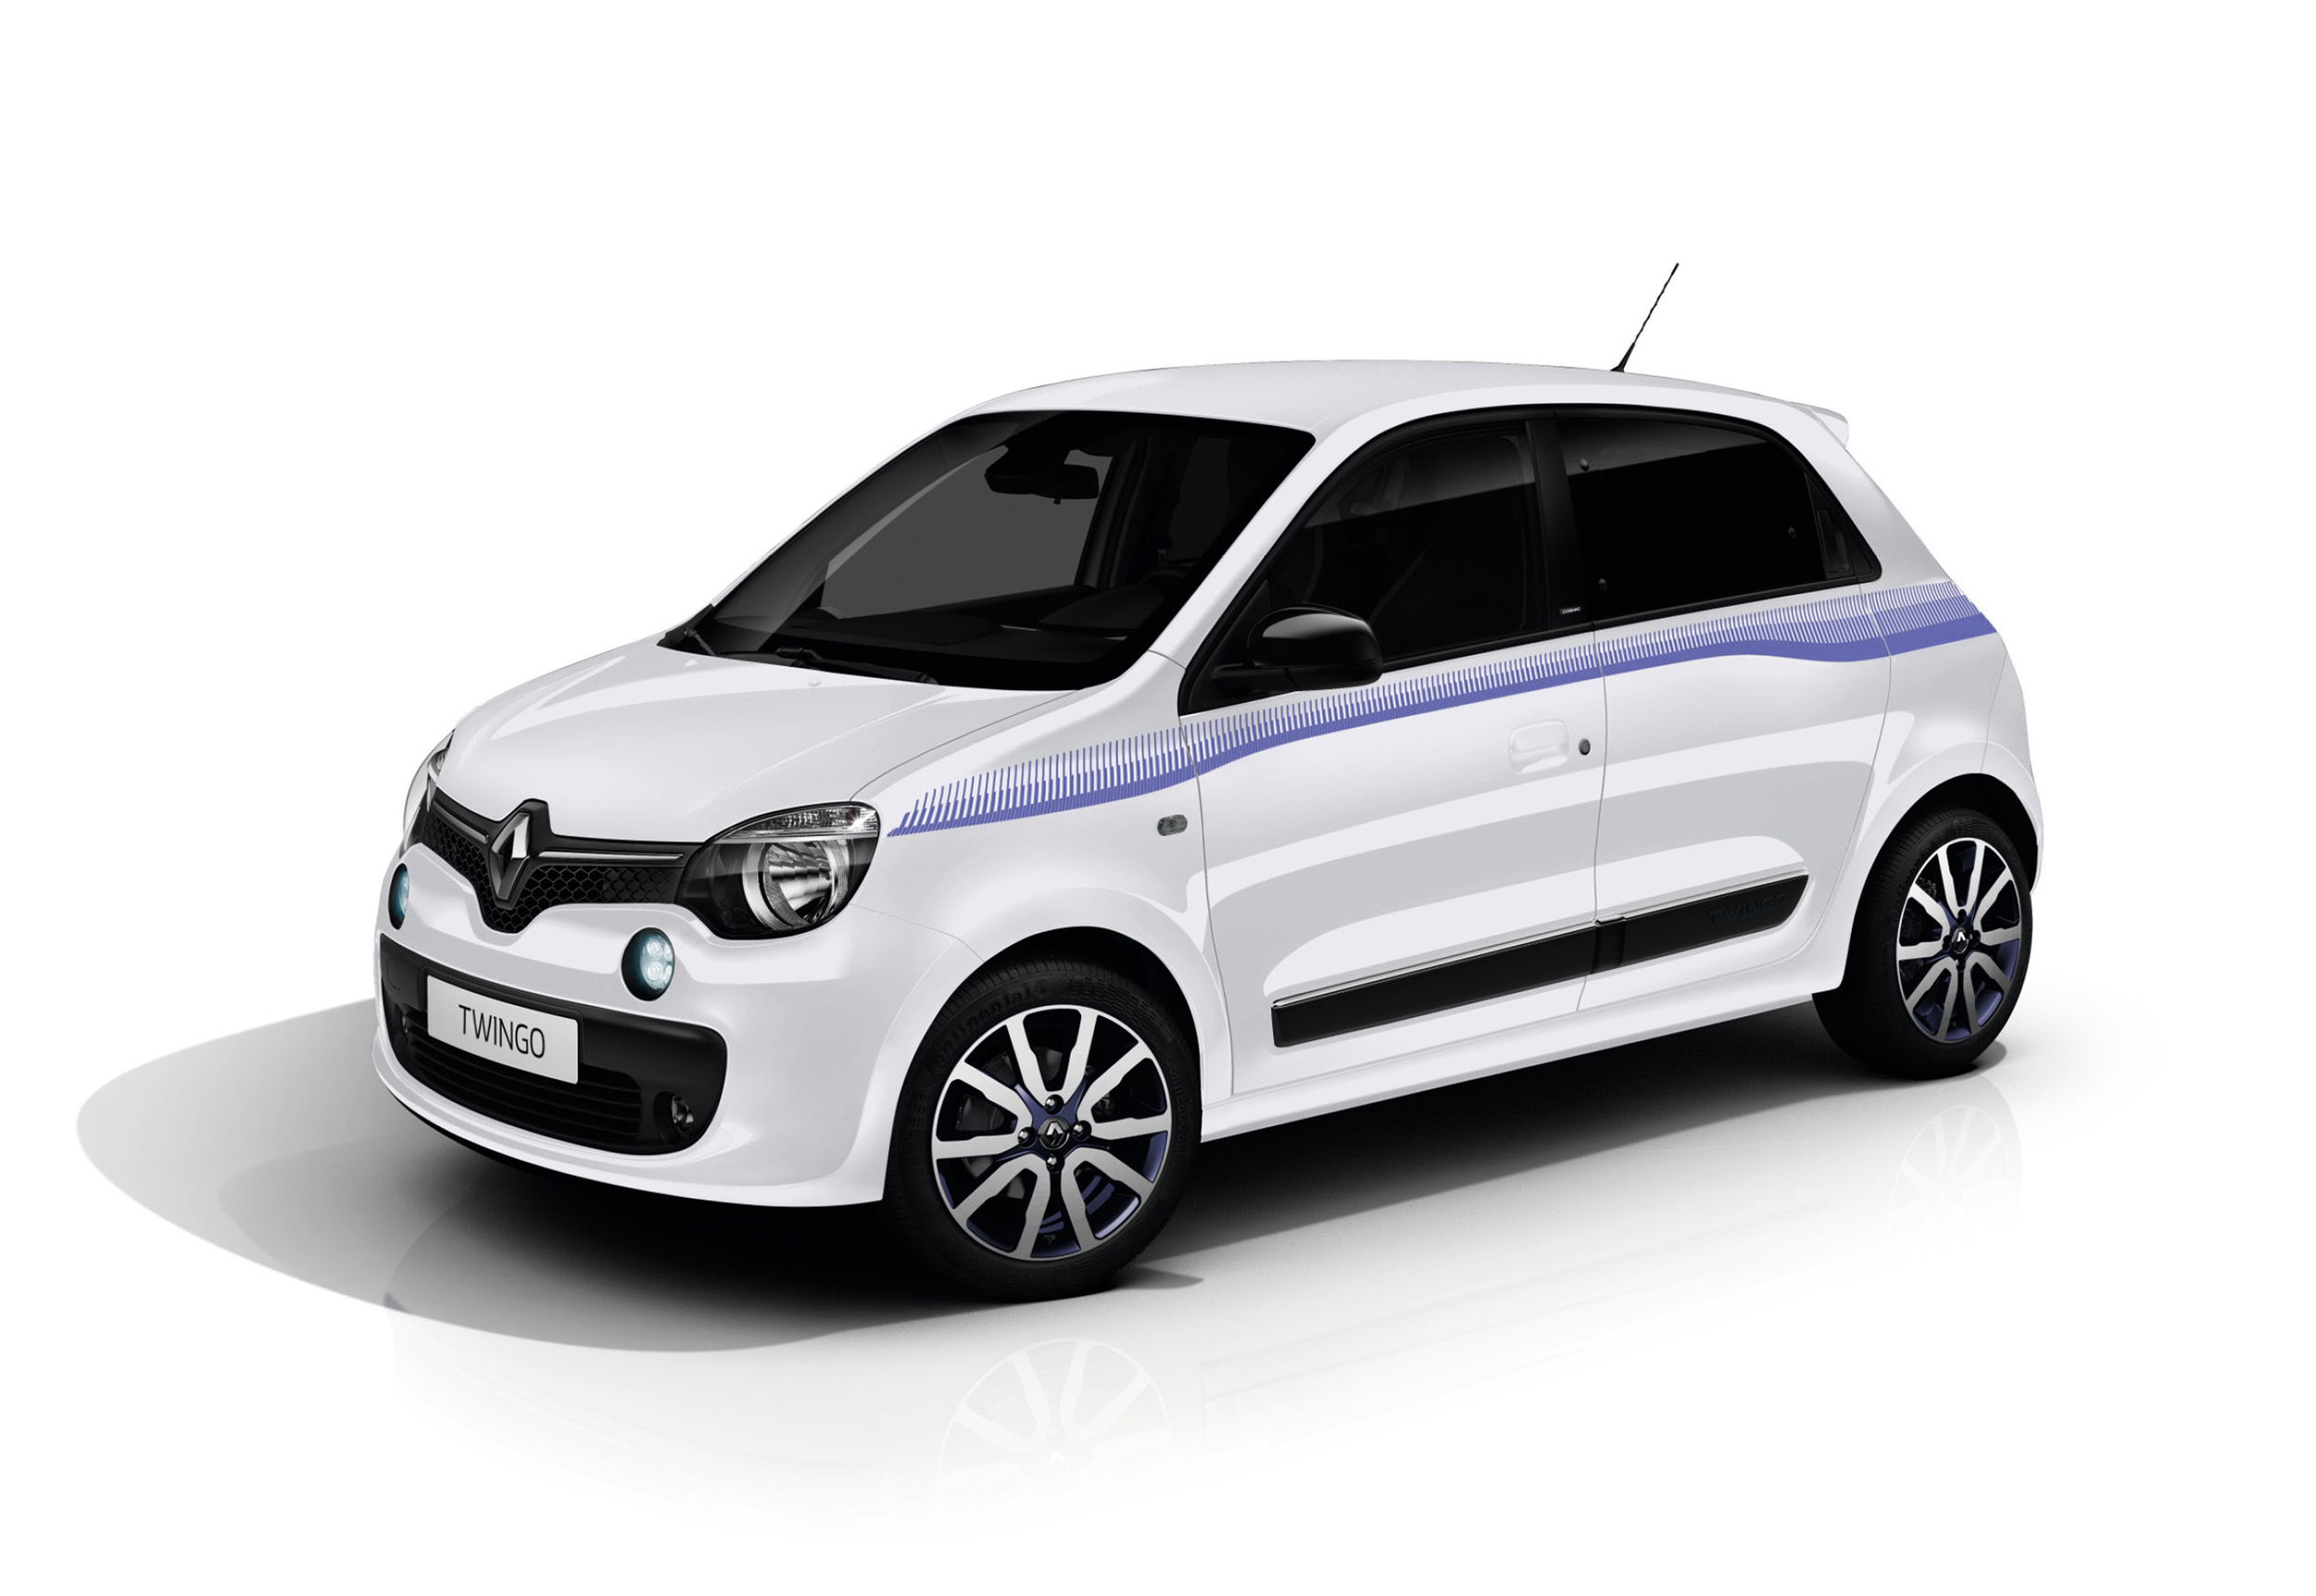 Renault reveals 'Iconic' Special Edition models